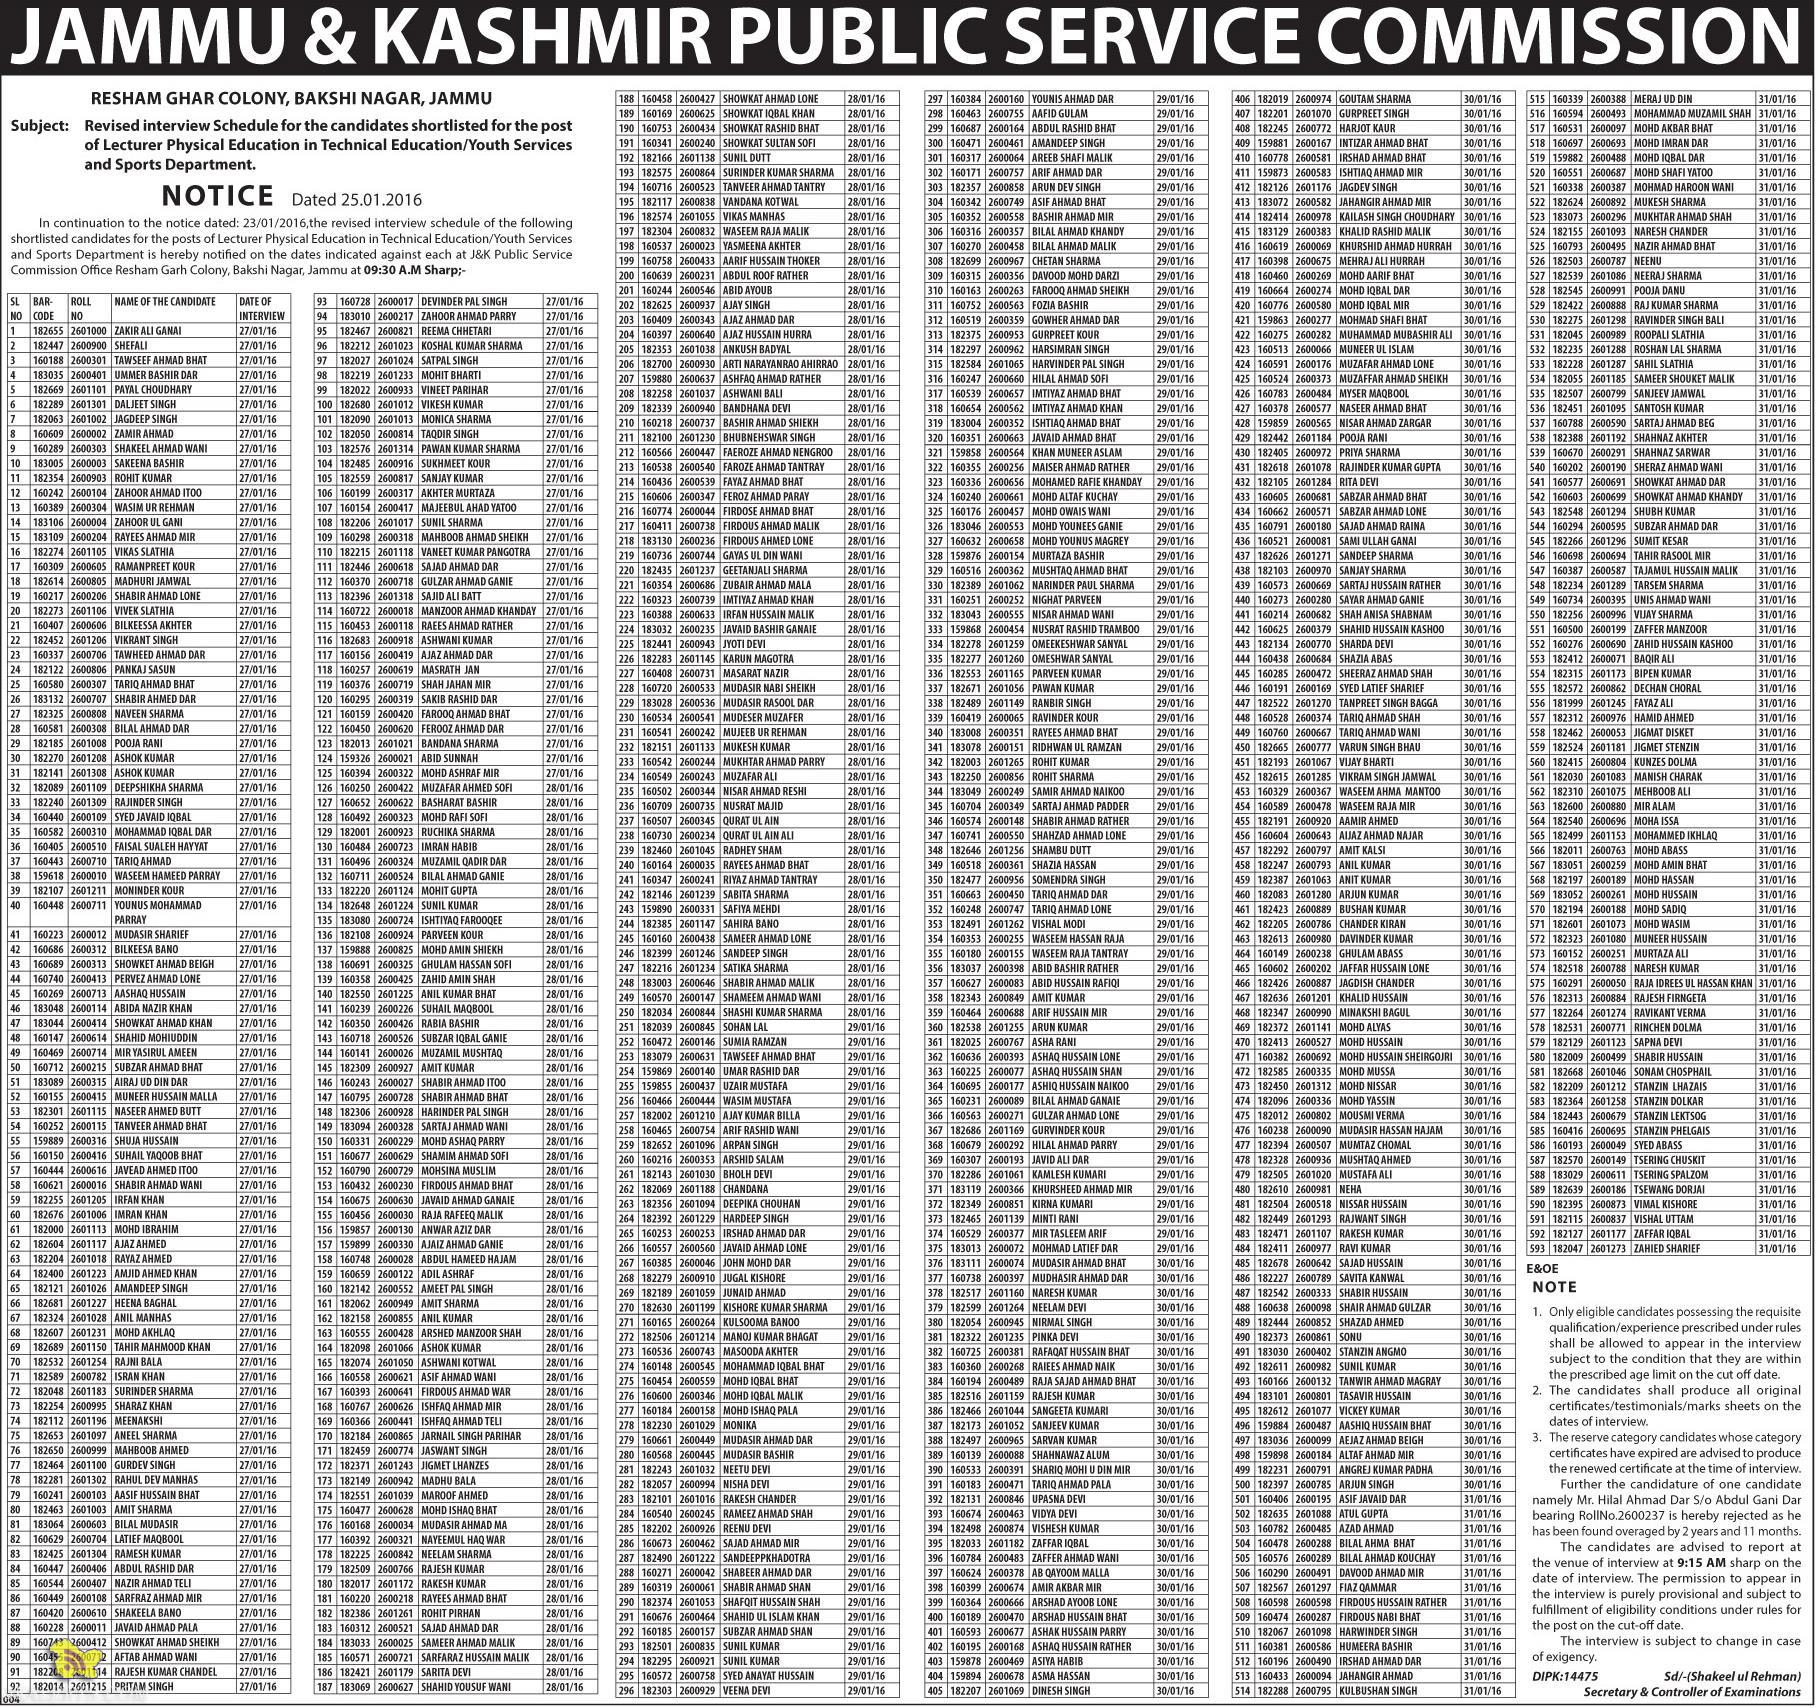 JKPSC Revised interview Schedule for Lecturer Physical Education in Technical Education/Youth Services and Sports Department